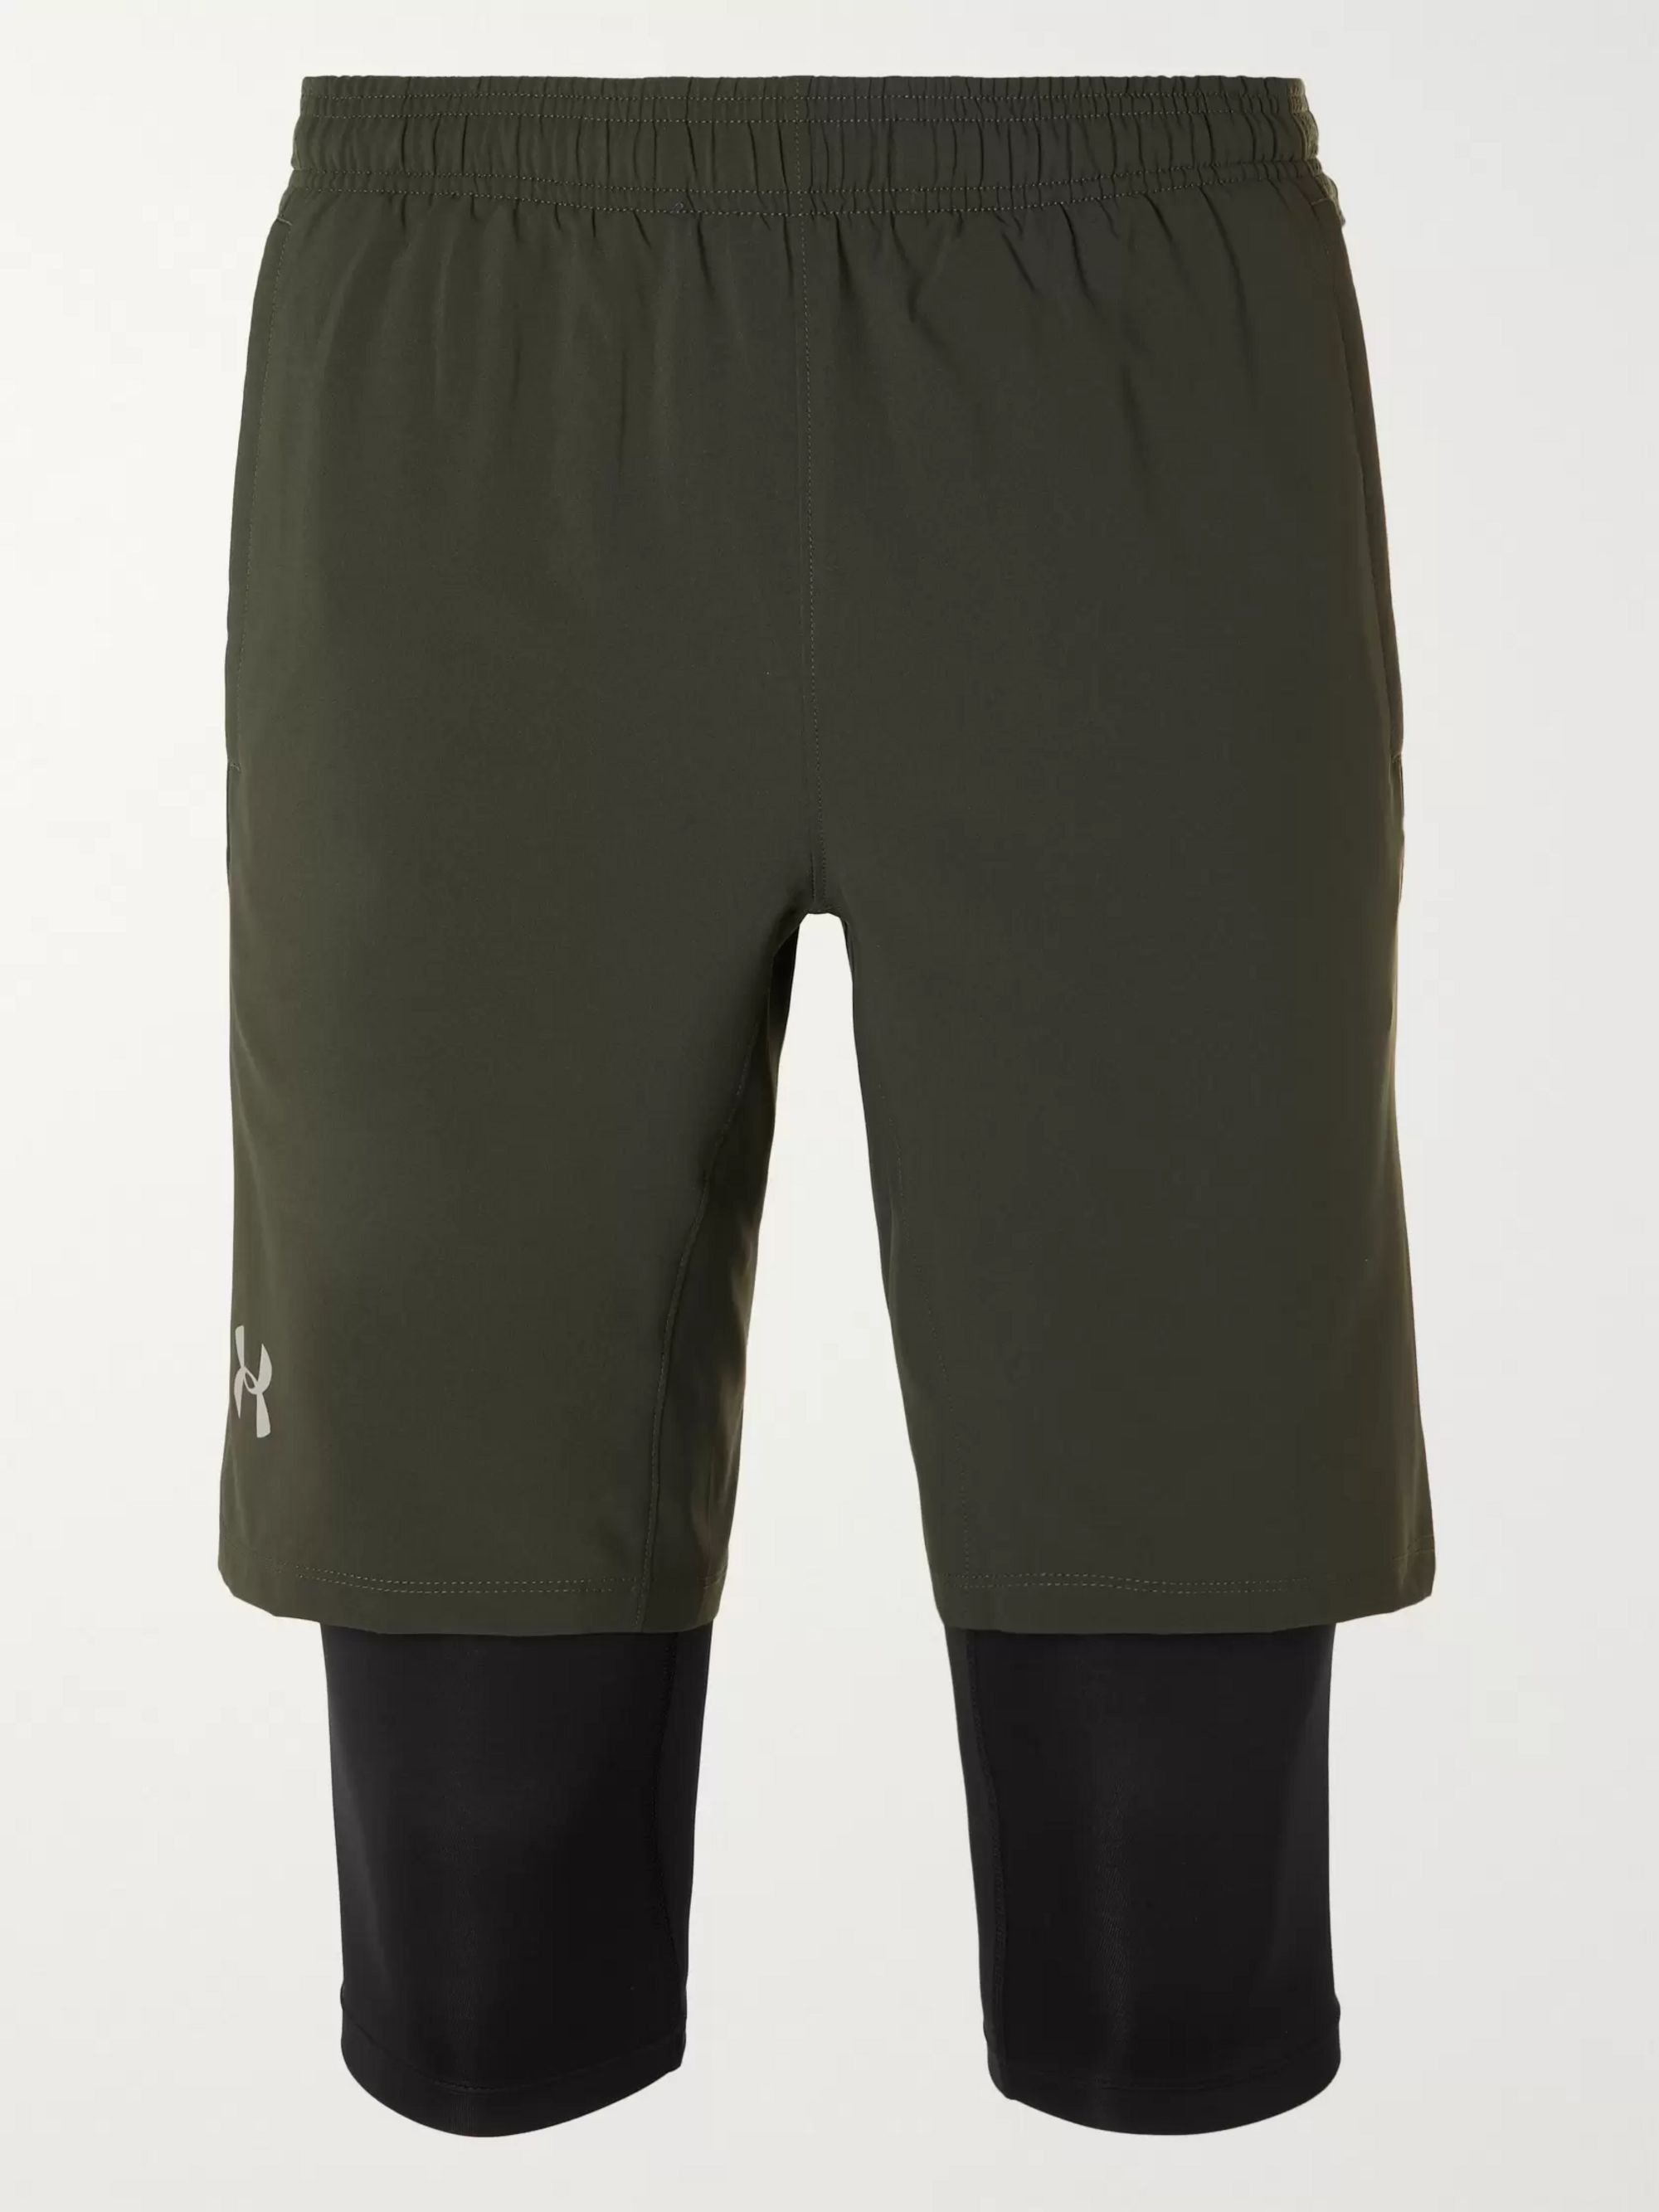 Green UA SW Slim-Fit Layered Stretch-Shell Shorts | Under Armour | MR PORTER